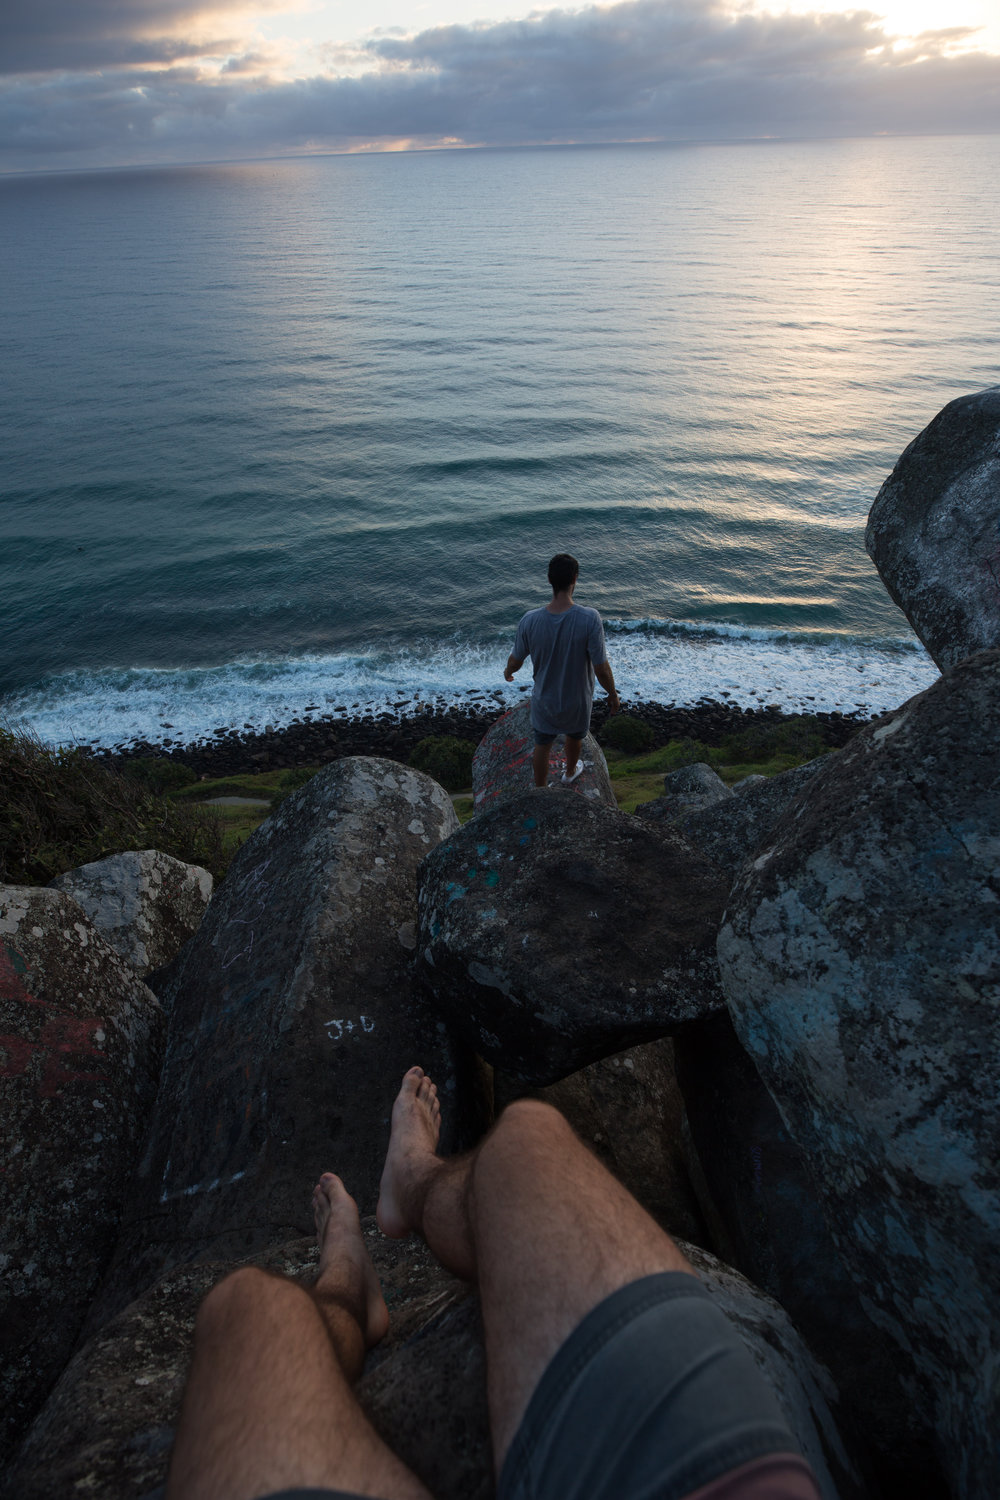 taking in the views at cock rock